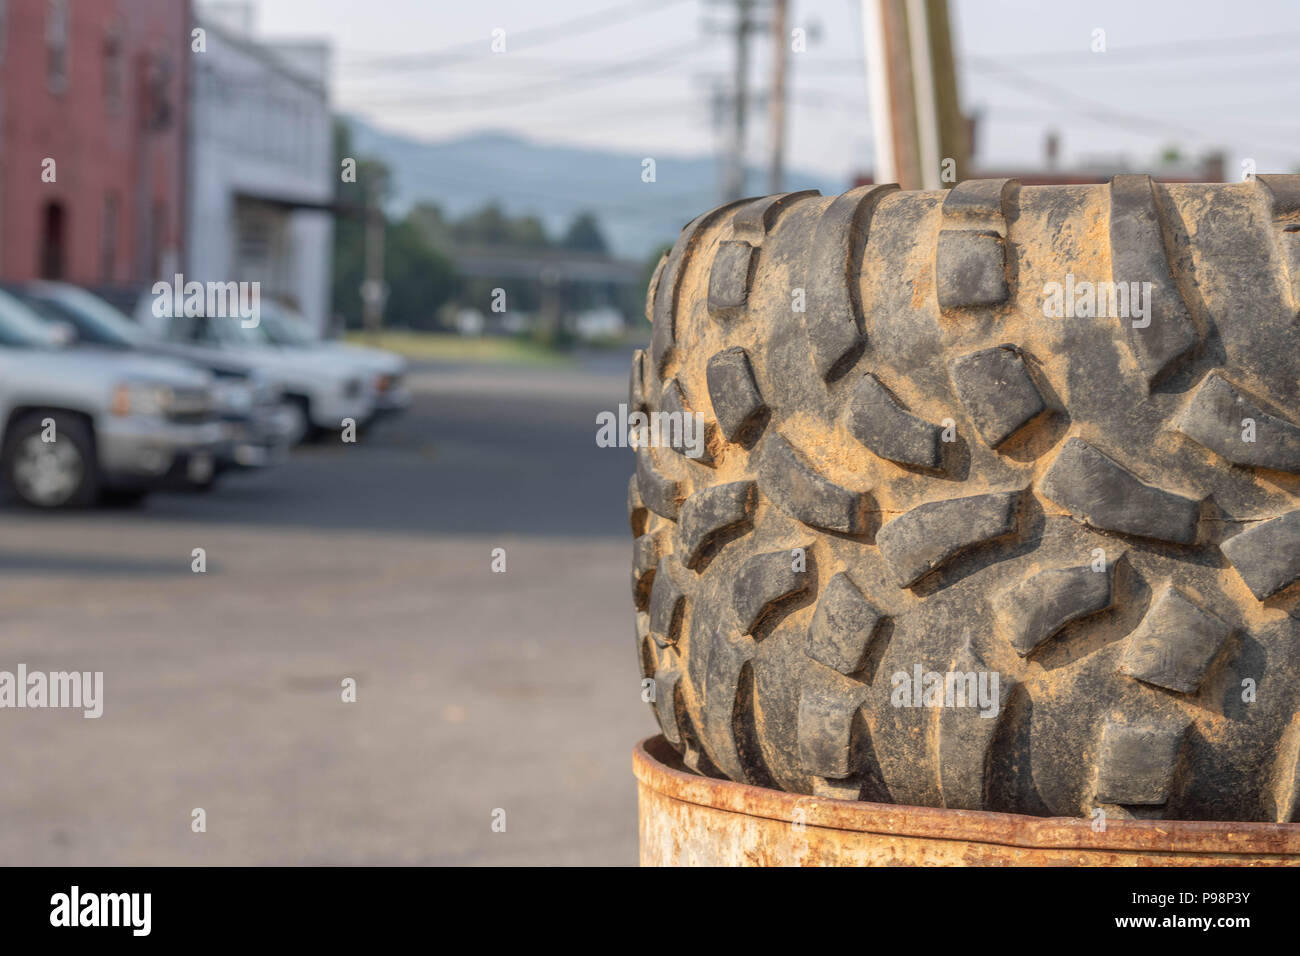 Tire for a quad with nobby tires - Stock Image